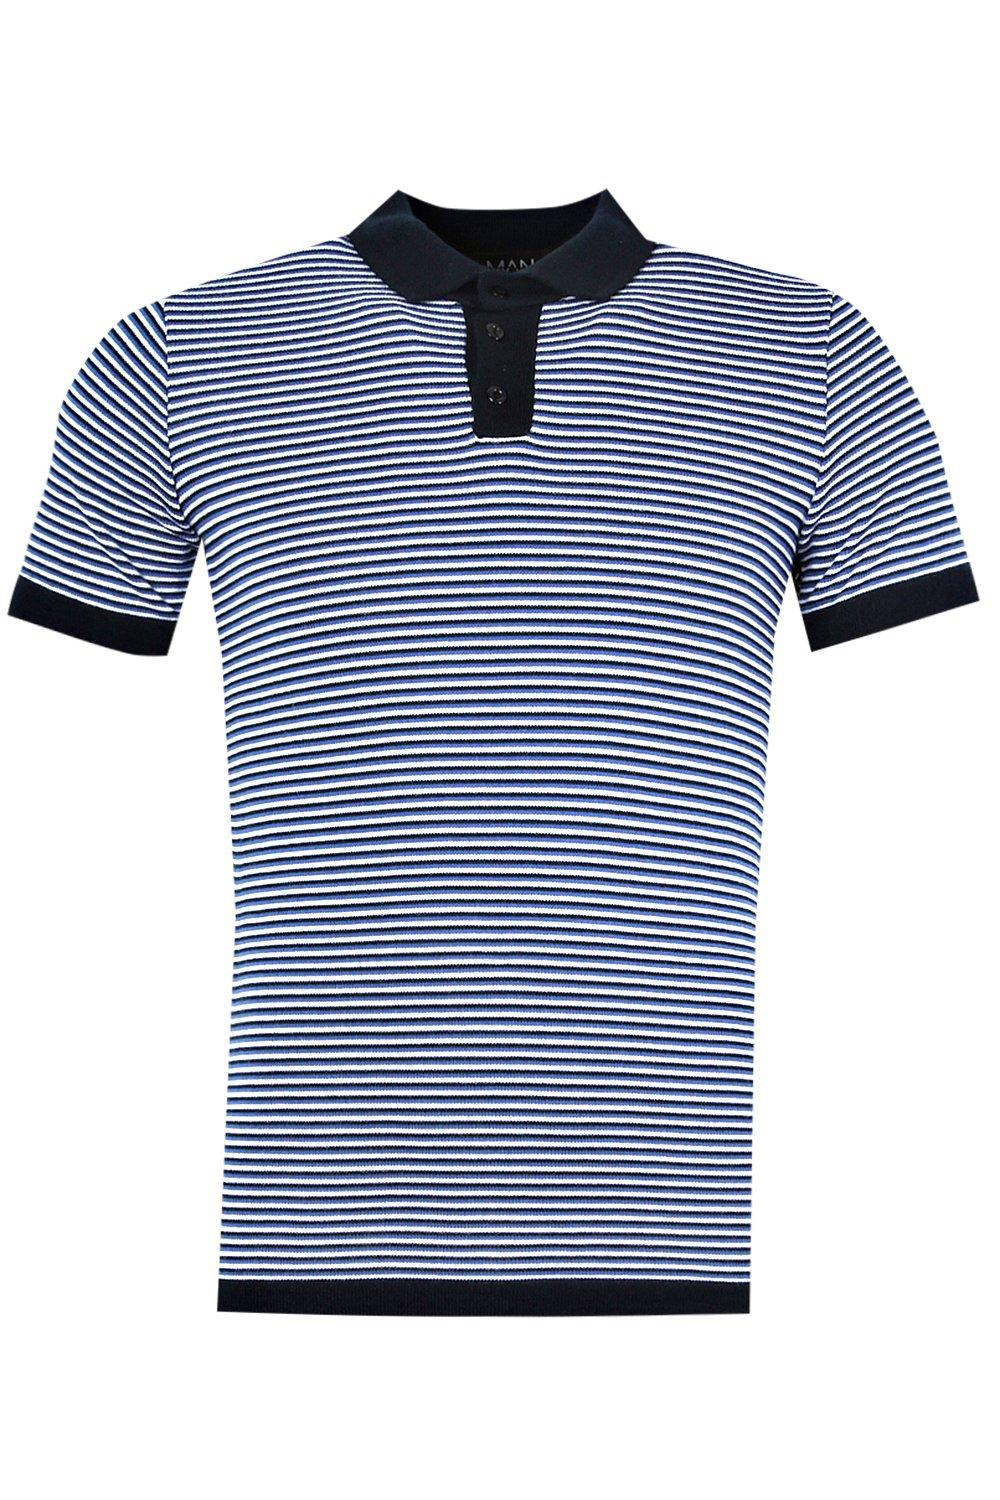 boohooMAN blue Short Sleeve Knitted Stripe Polo